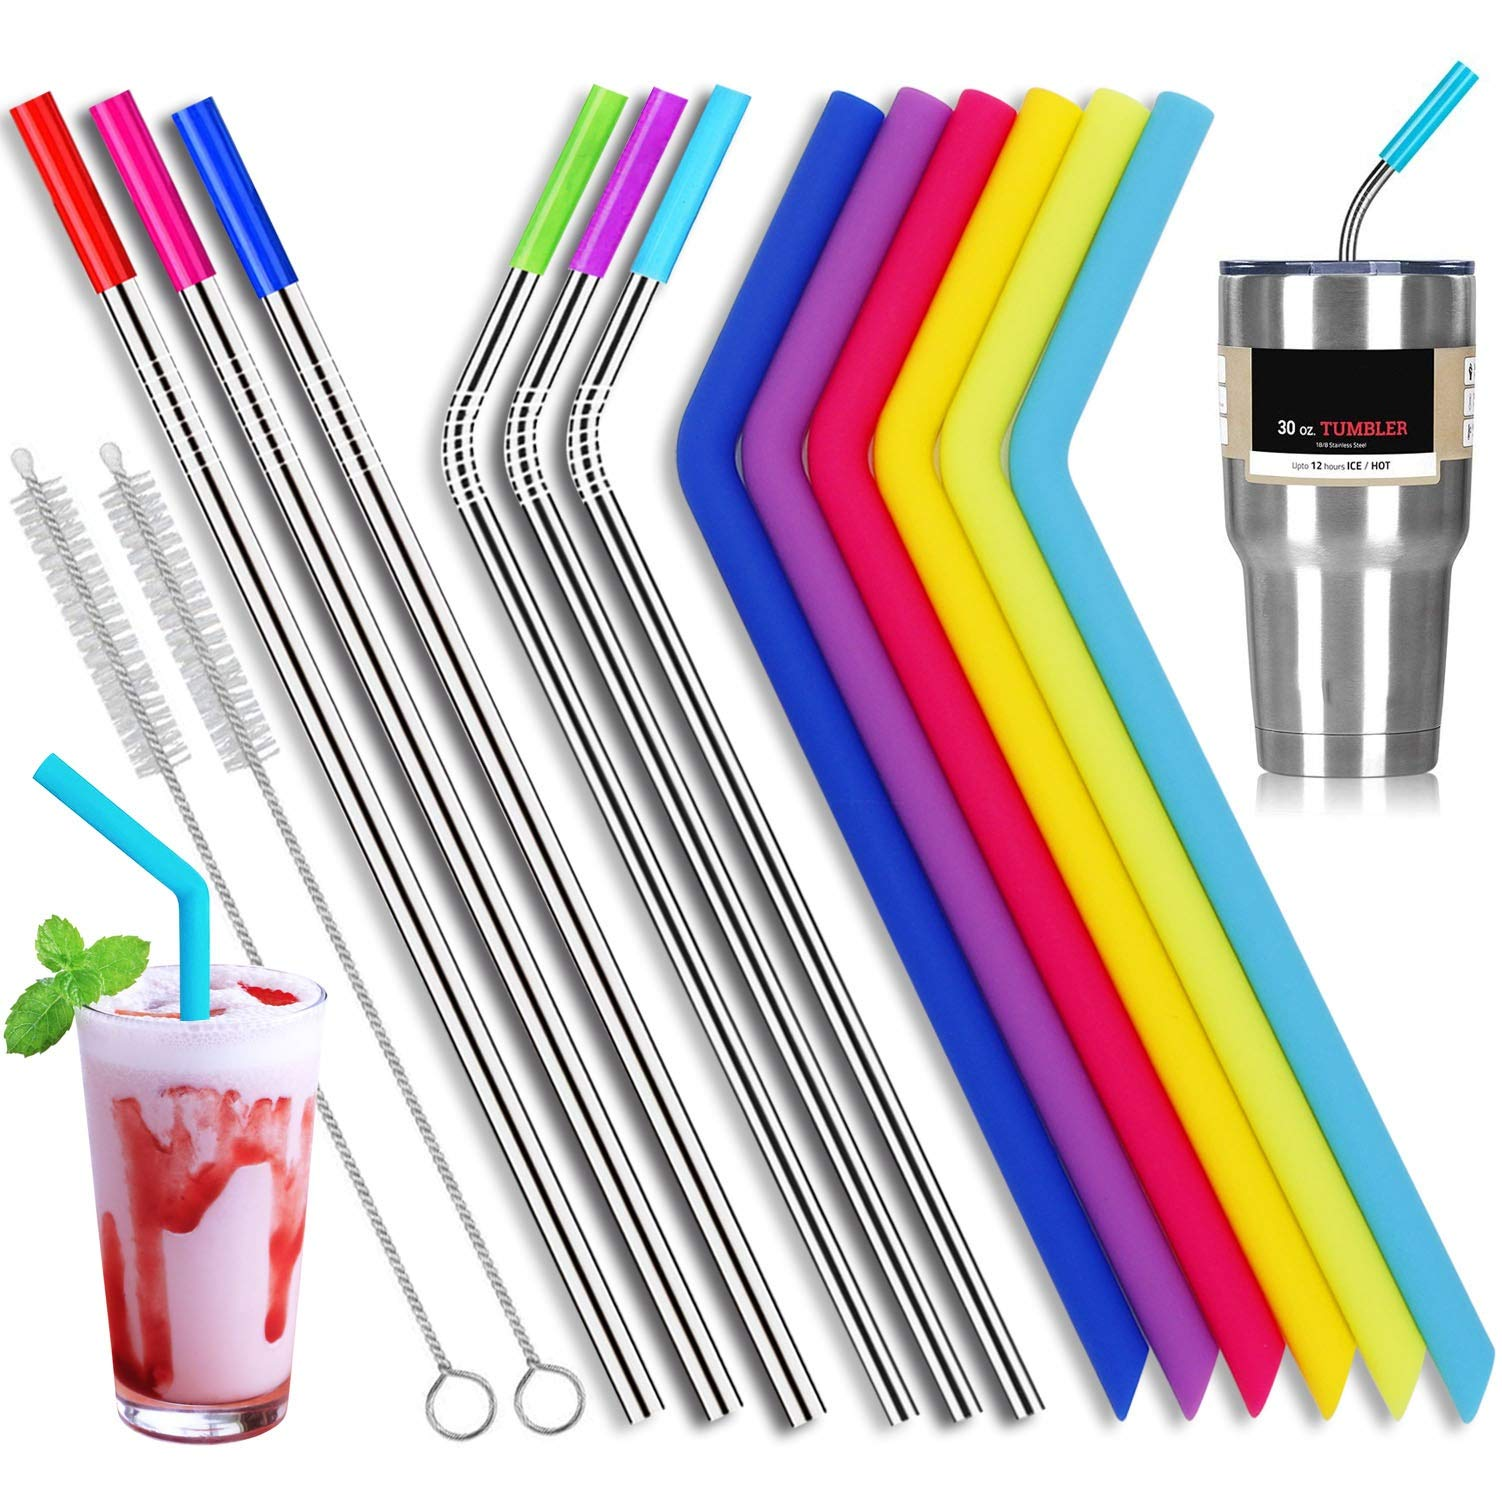 6 Stainless Steel Straws and 6 Silicone Straws with 2 Cleaning Brushes, Reusable Silicone and Metal Drinking Straws for 20oz 30oz Stainless Tumbler Yeti Rambler Rtic Ozark Trail Complete Bundle